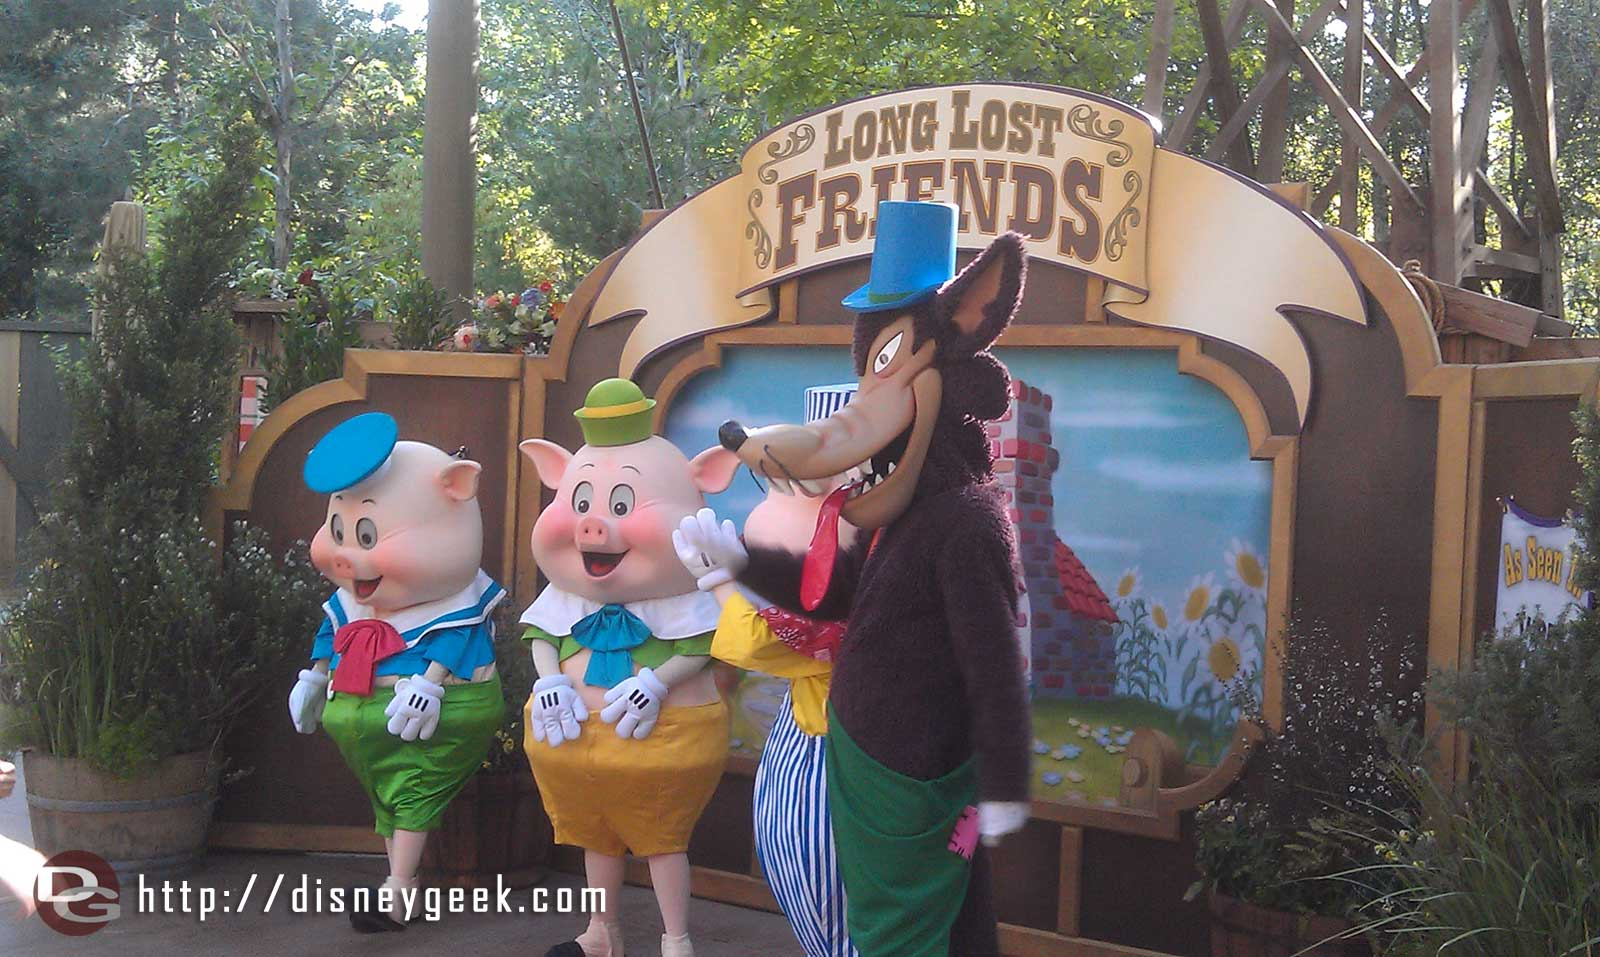 The Three Little Pigs and Big Bad Wolf at #longlostfriendsweek #limitedtimemagic